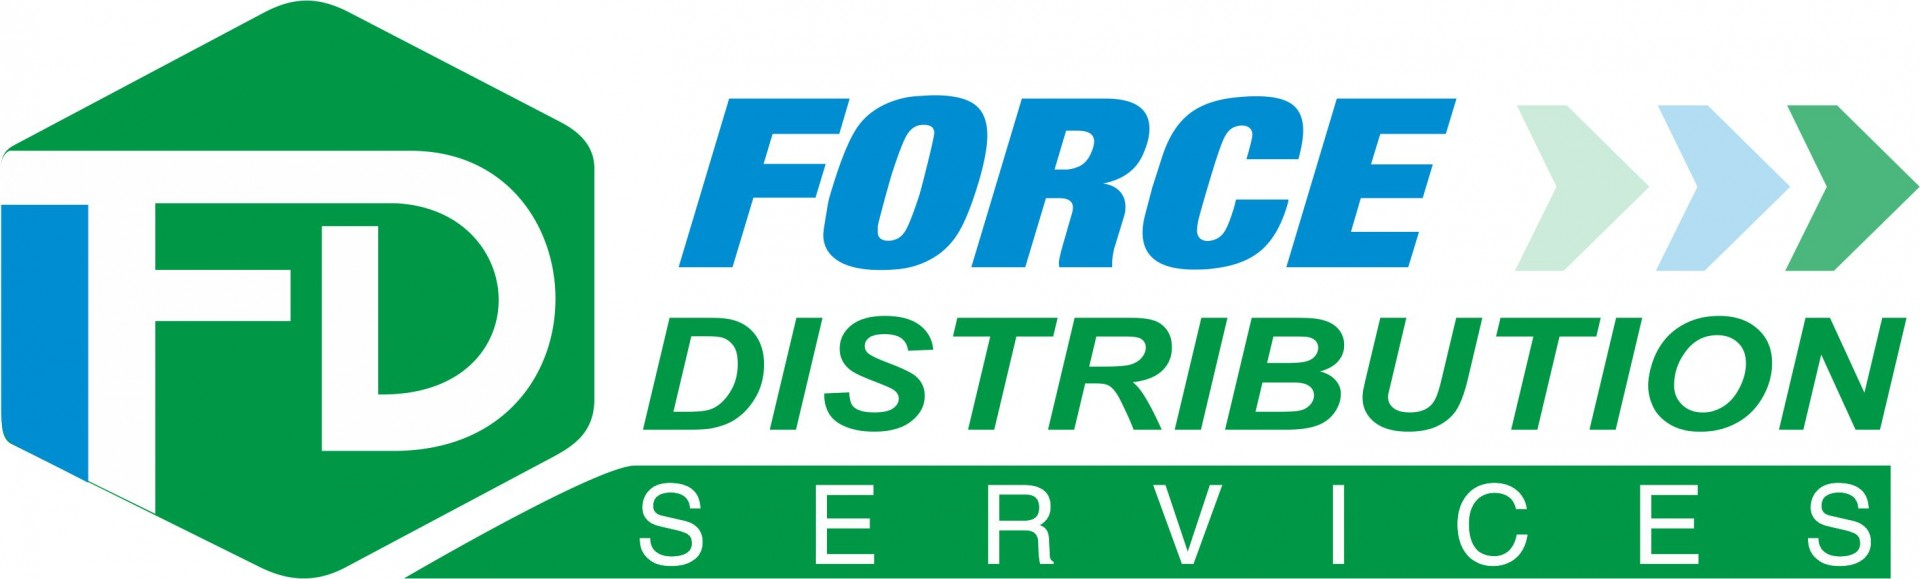 FORCE DISTRIBUTION SERVICES